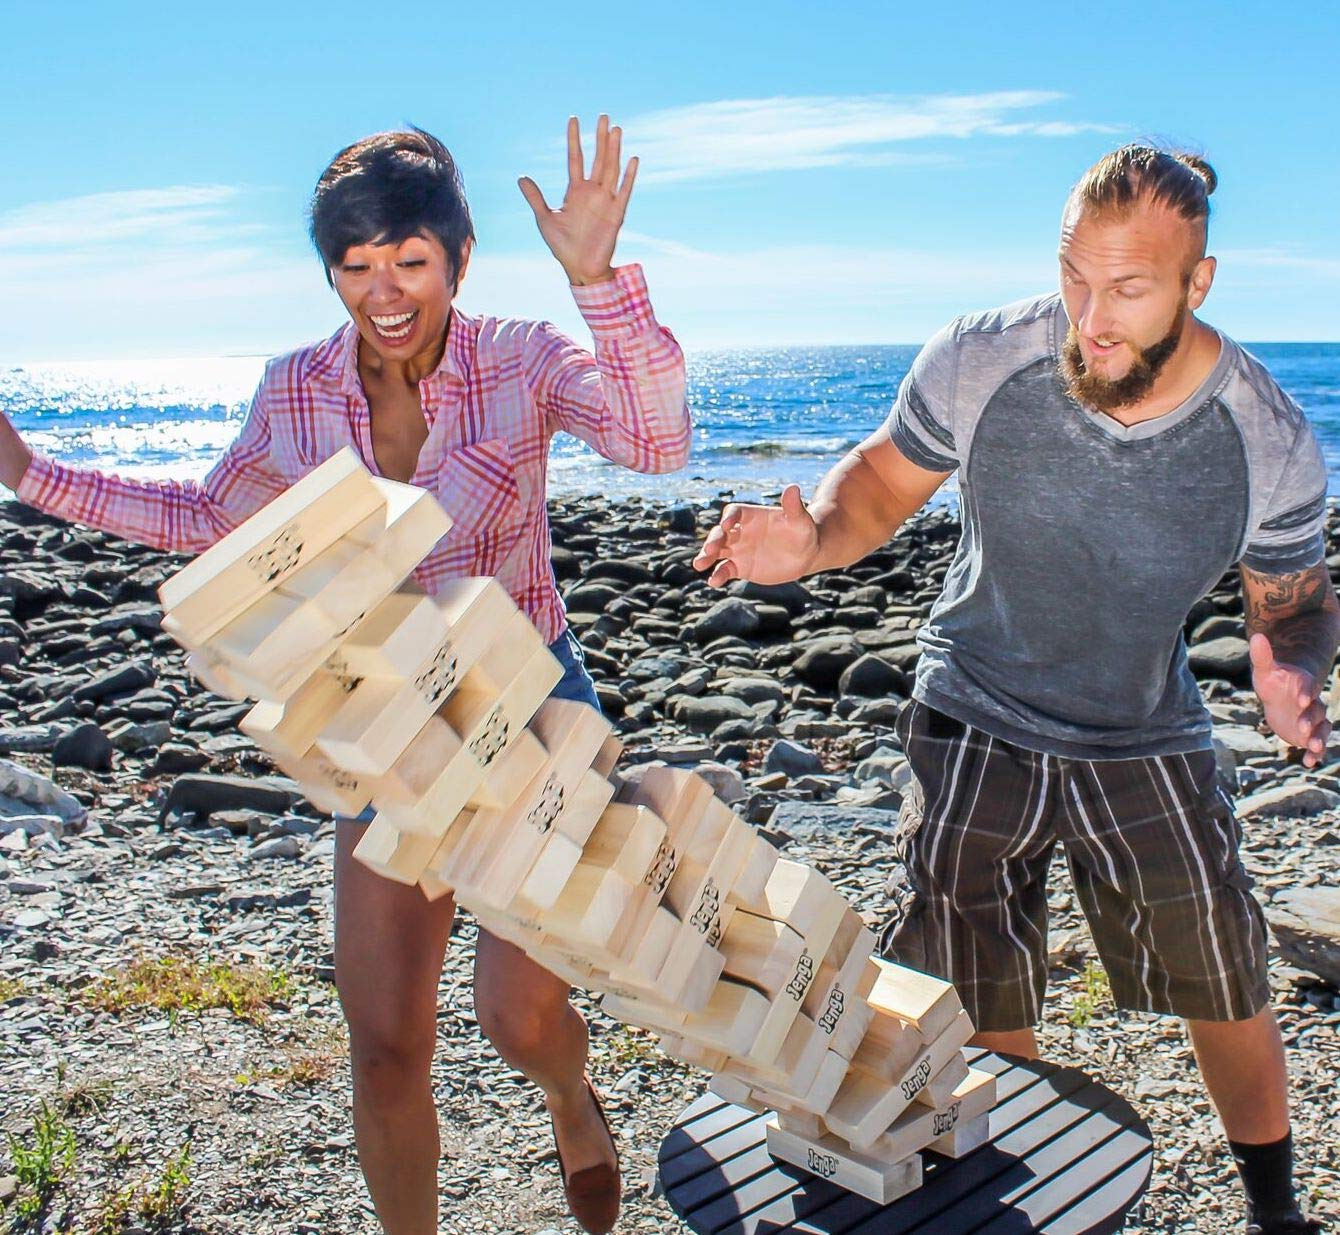 barbeque party games - giant jenga